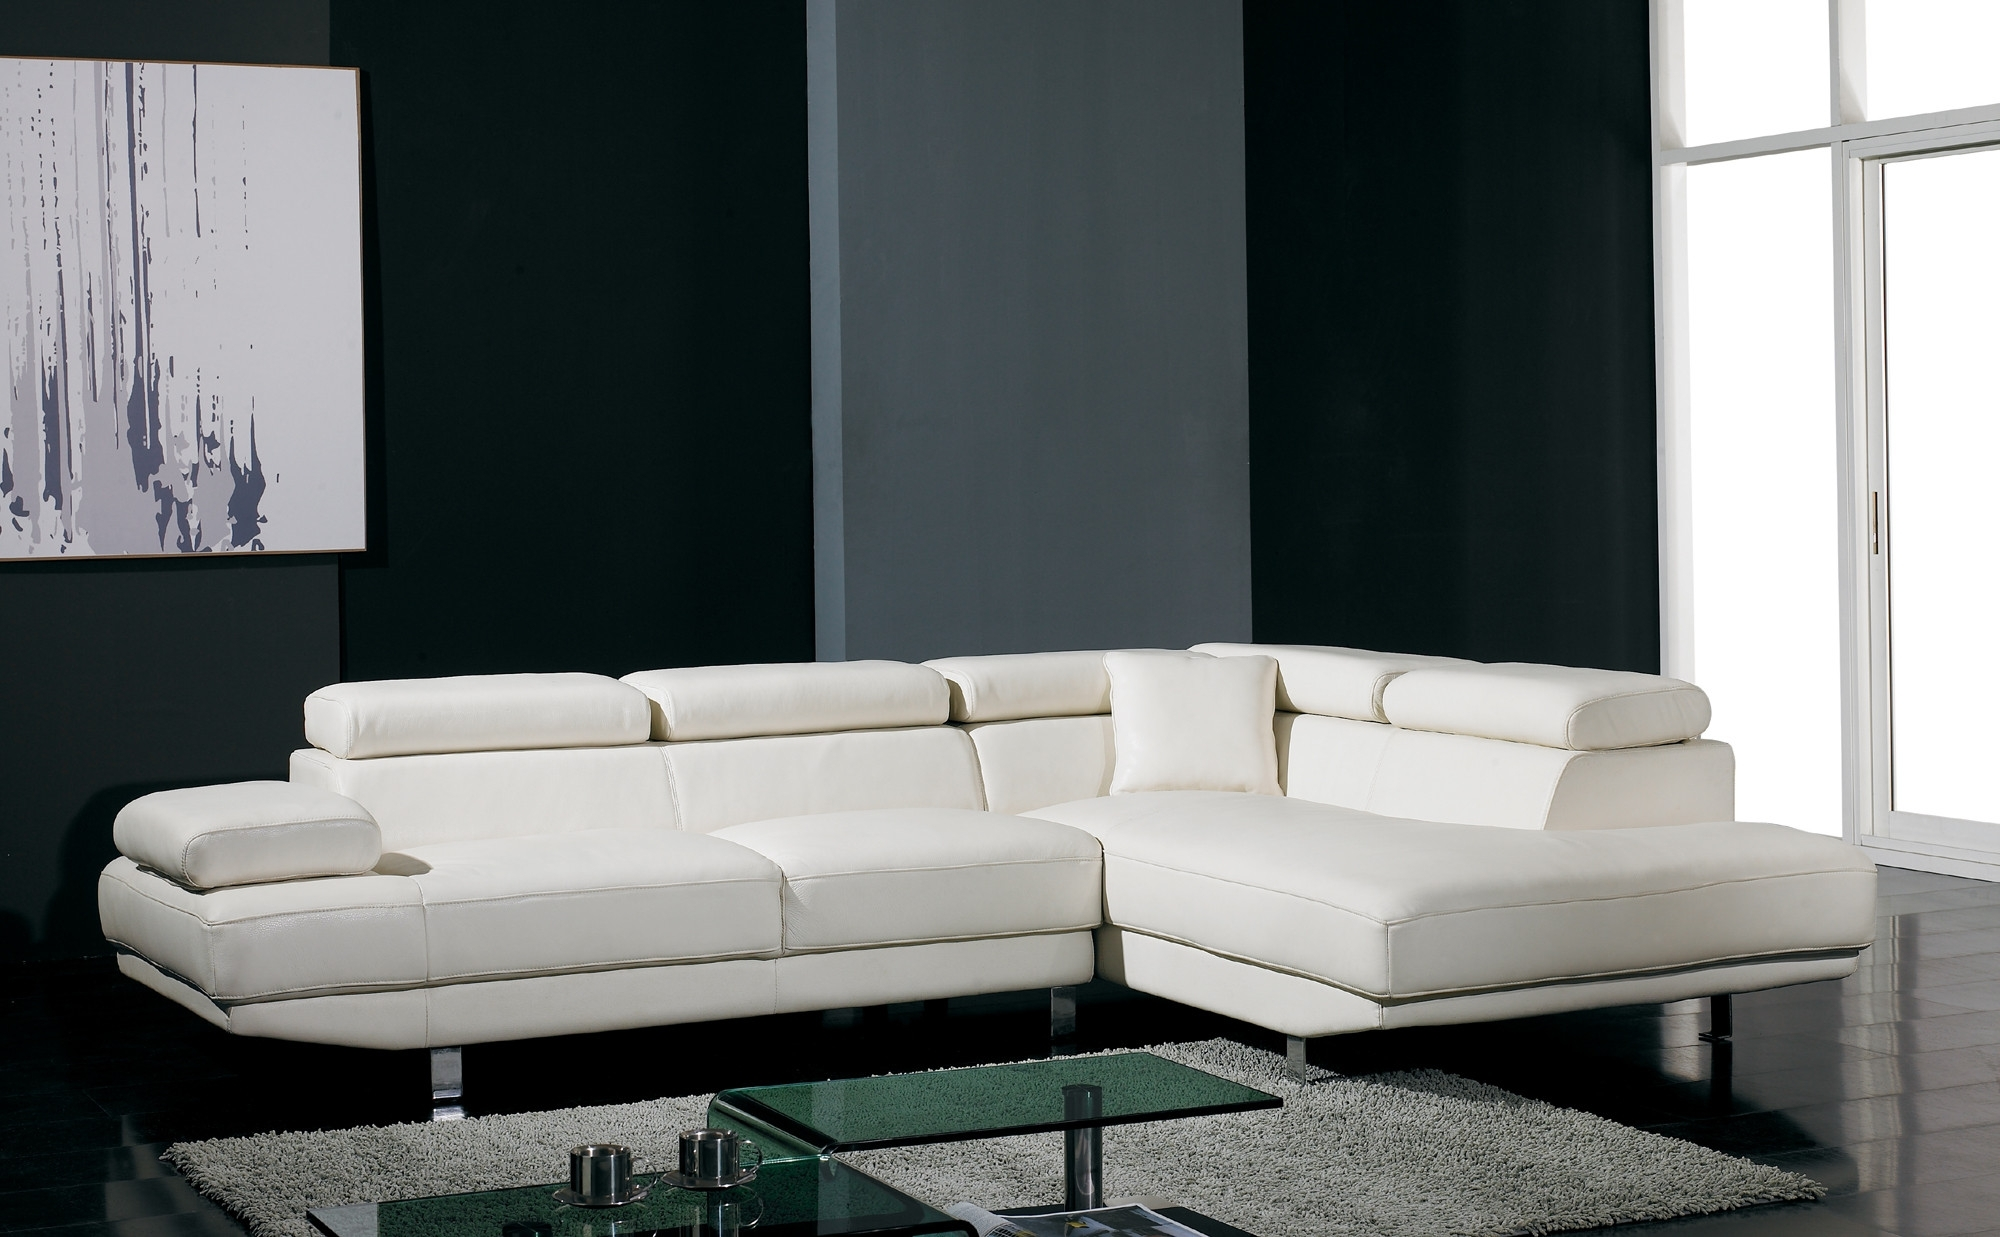 T60 Ultra Modern White Leather Sectional Sofa Intended For Modern Sectional Sofas (View 7 of 10)